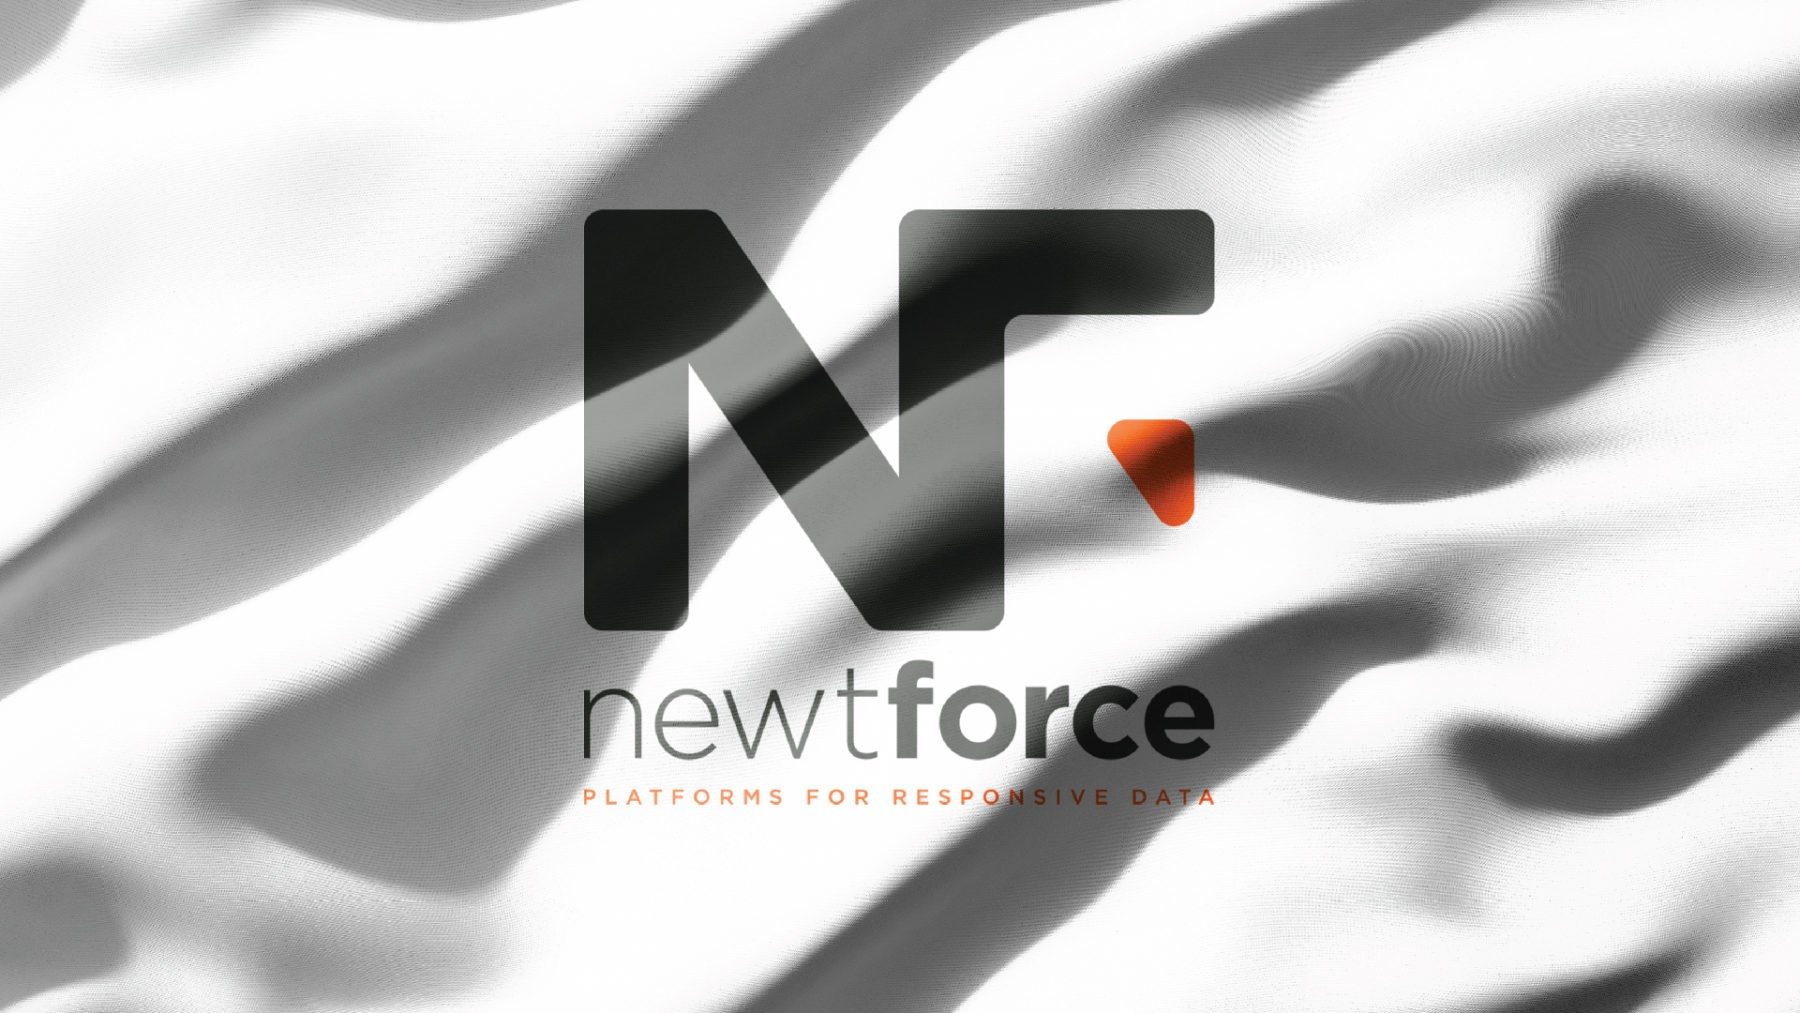 Nwet force BP-09